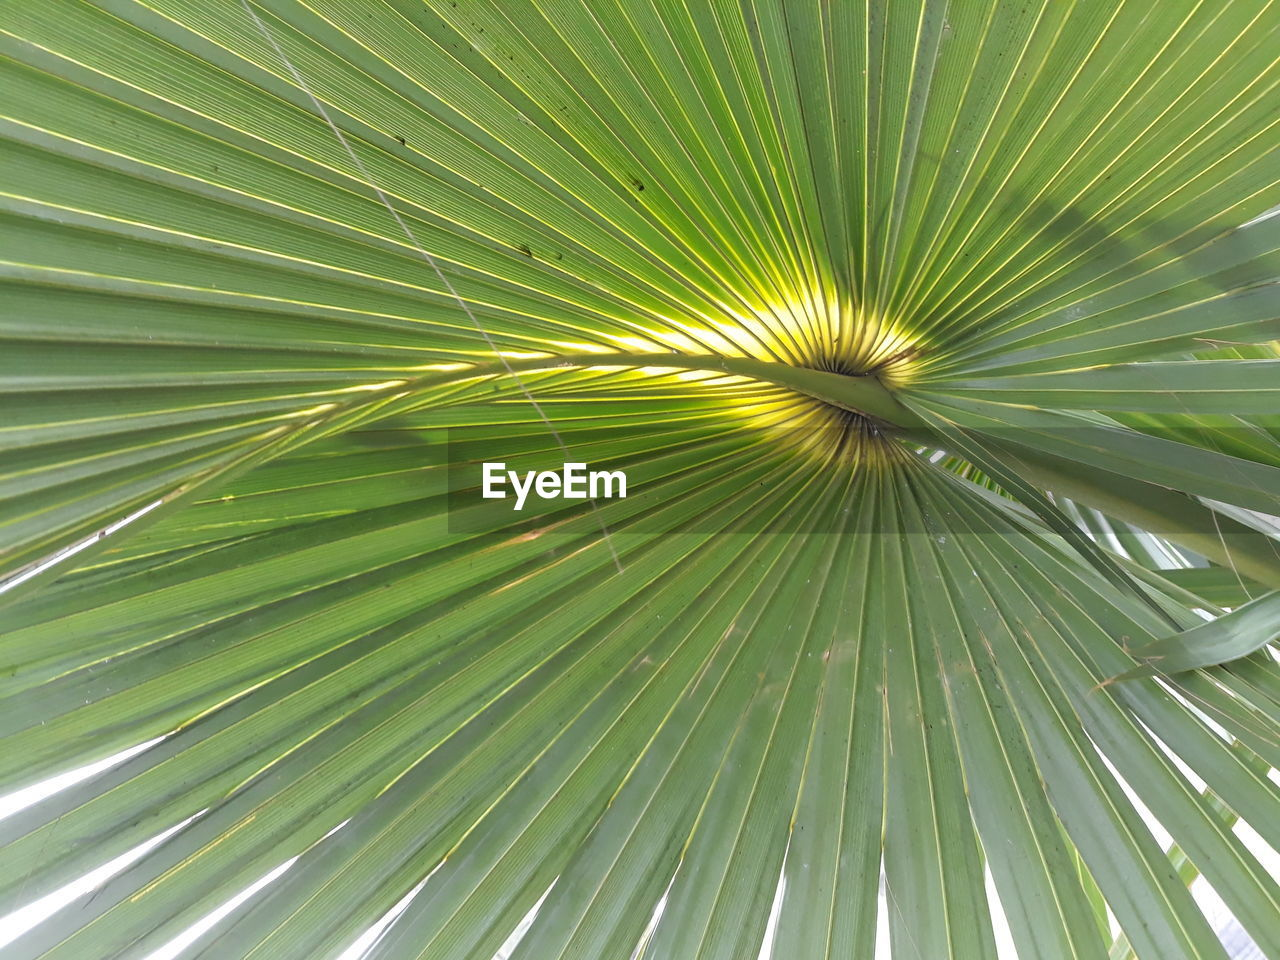 leaf, green color, plant part, full frame, growth, palm tree, backgrounds, close-up, palm leaf, pattern, tropical climate, no people, beauty in nature, plant, tree, nature, day, natural pattern, frond, outdoors, directly below, rainforest